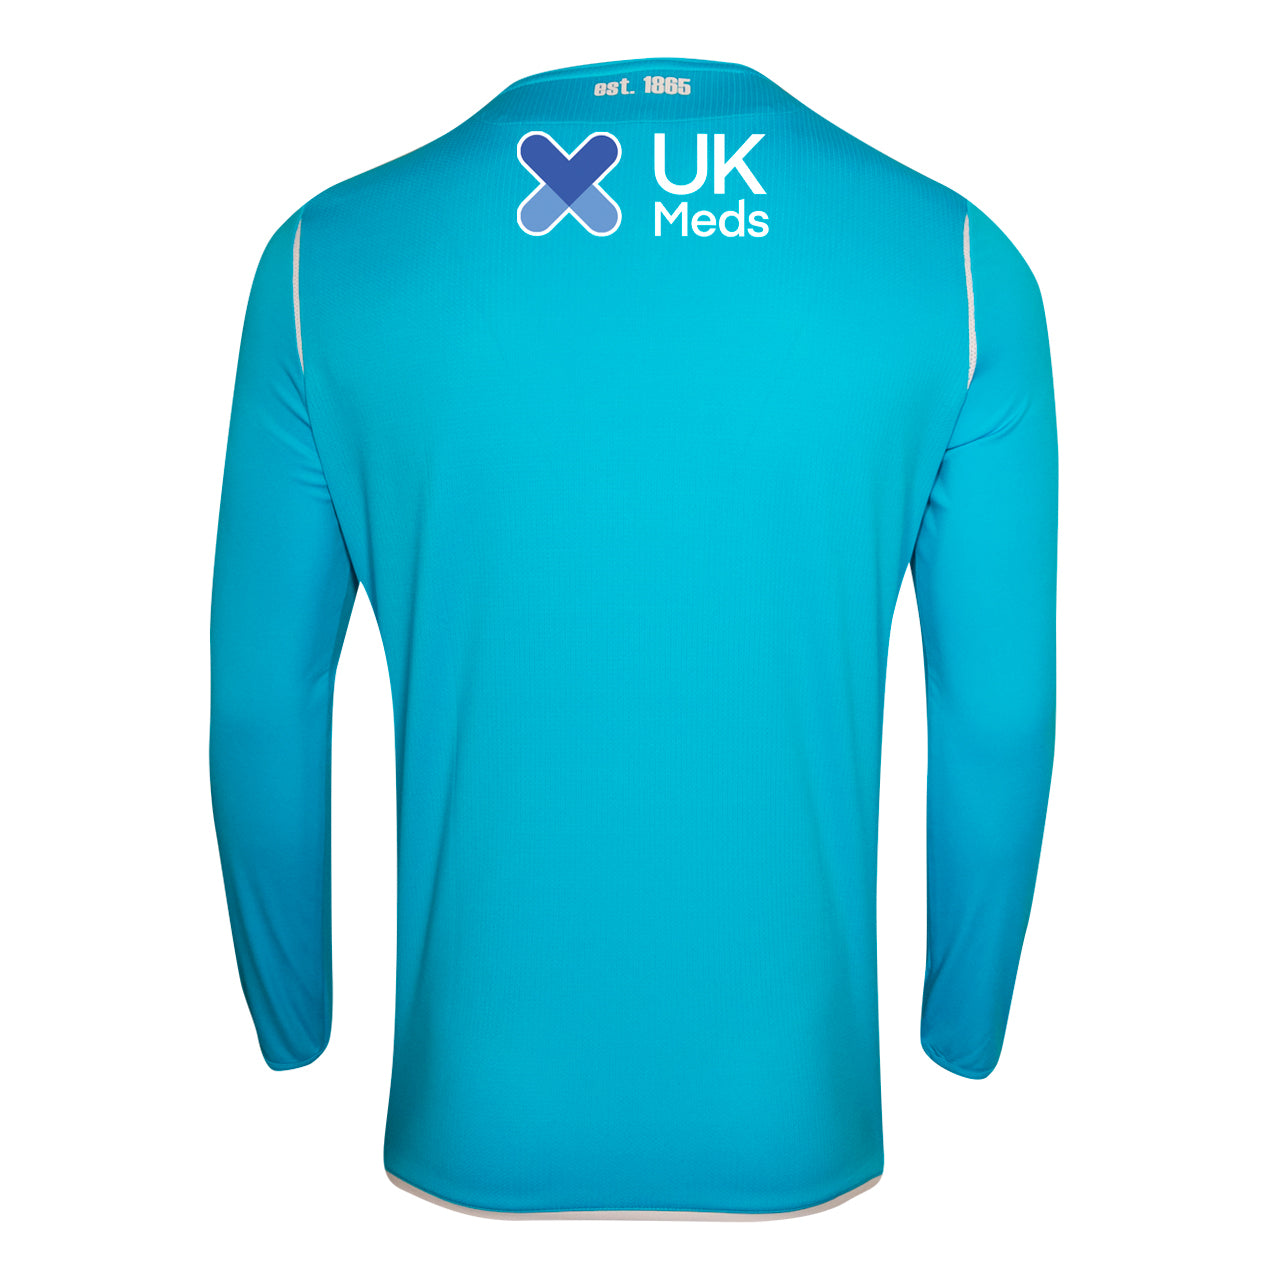 NFFC Mens Blue Goalkeeper Shirt 2019/20